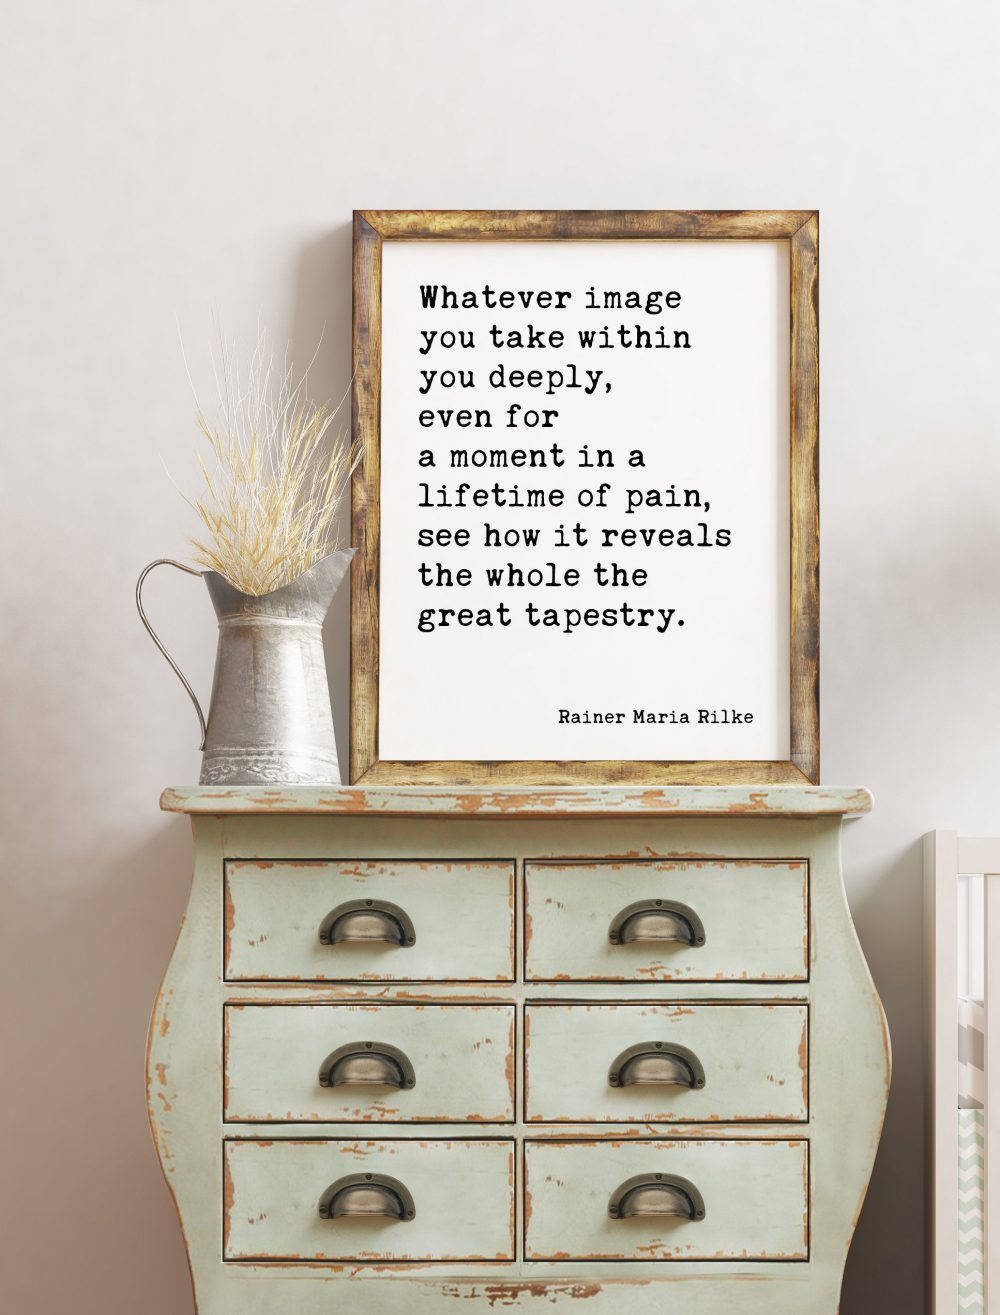 Whatever image you take within you deeply, see how it reveals the whole — the great tapestry. Rainer Maria Rilke Inspirational Art Quote